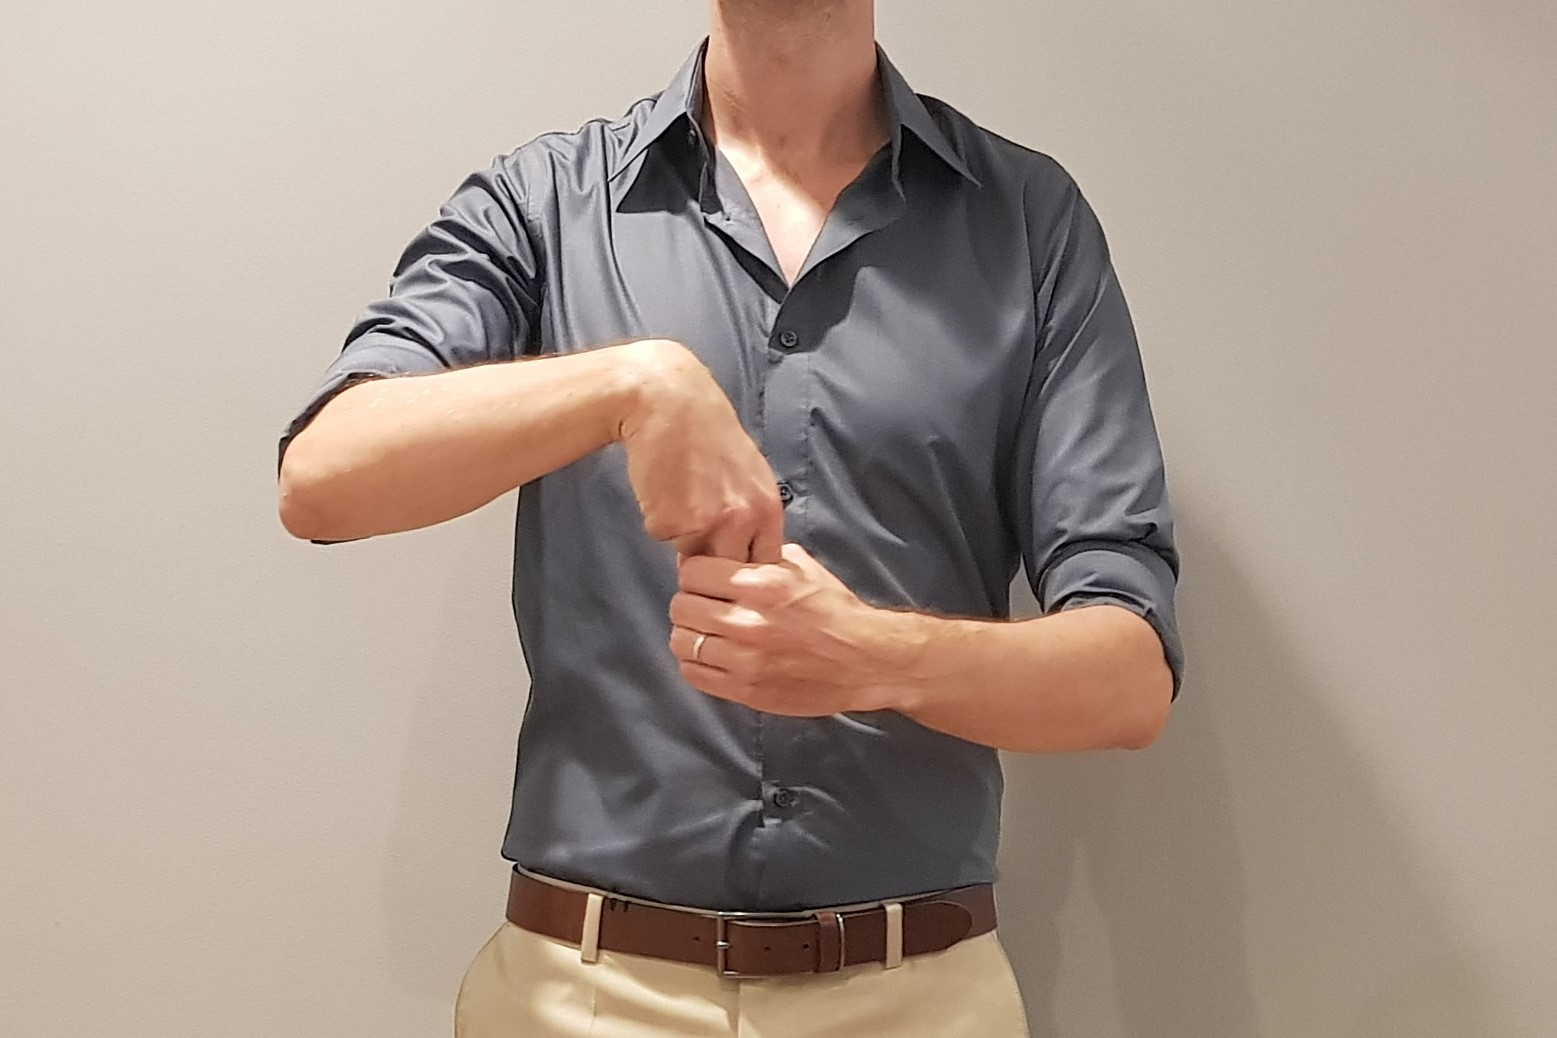 Teach Prepositions Handily With These Esl Gestures